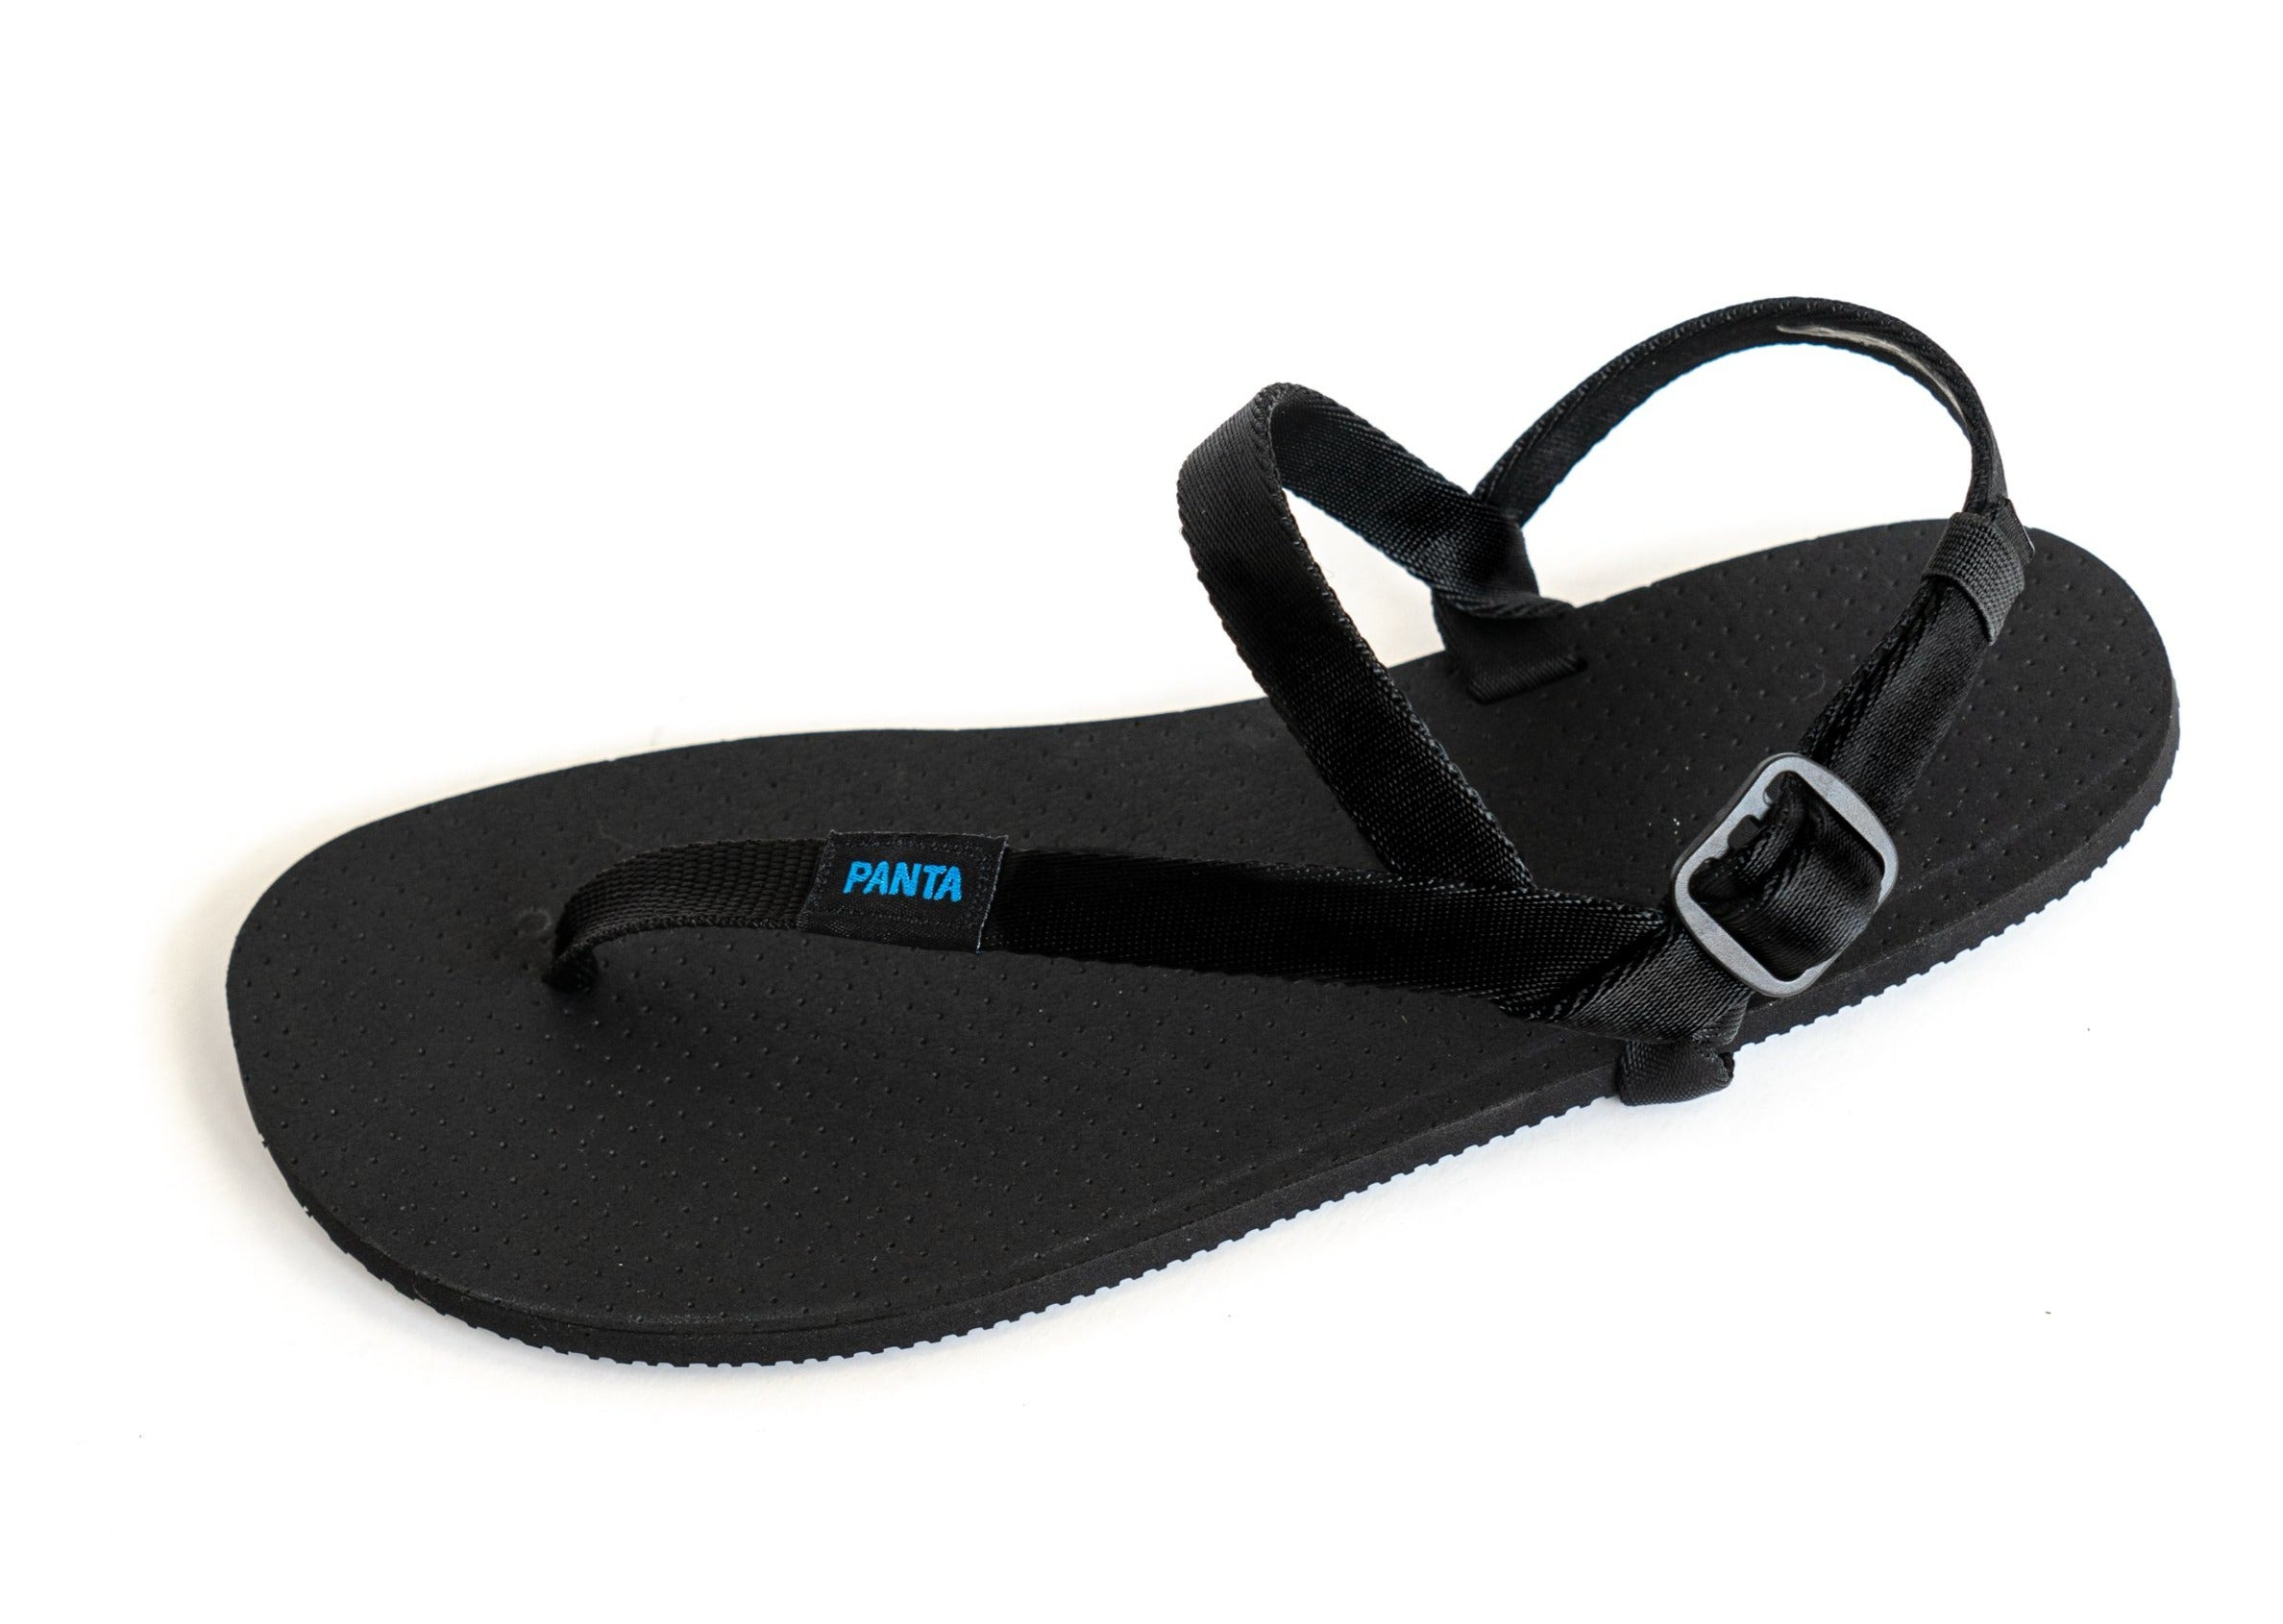 Samos sandals in full